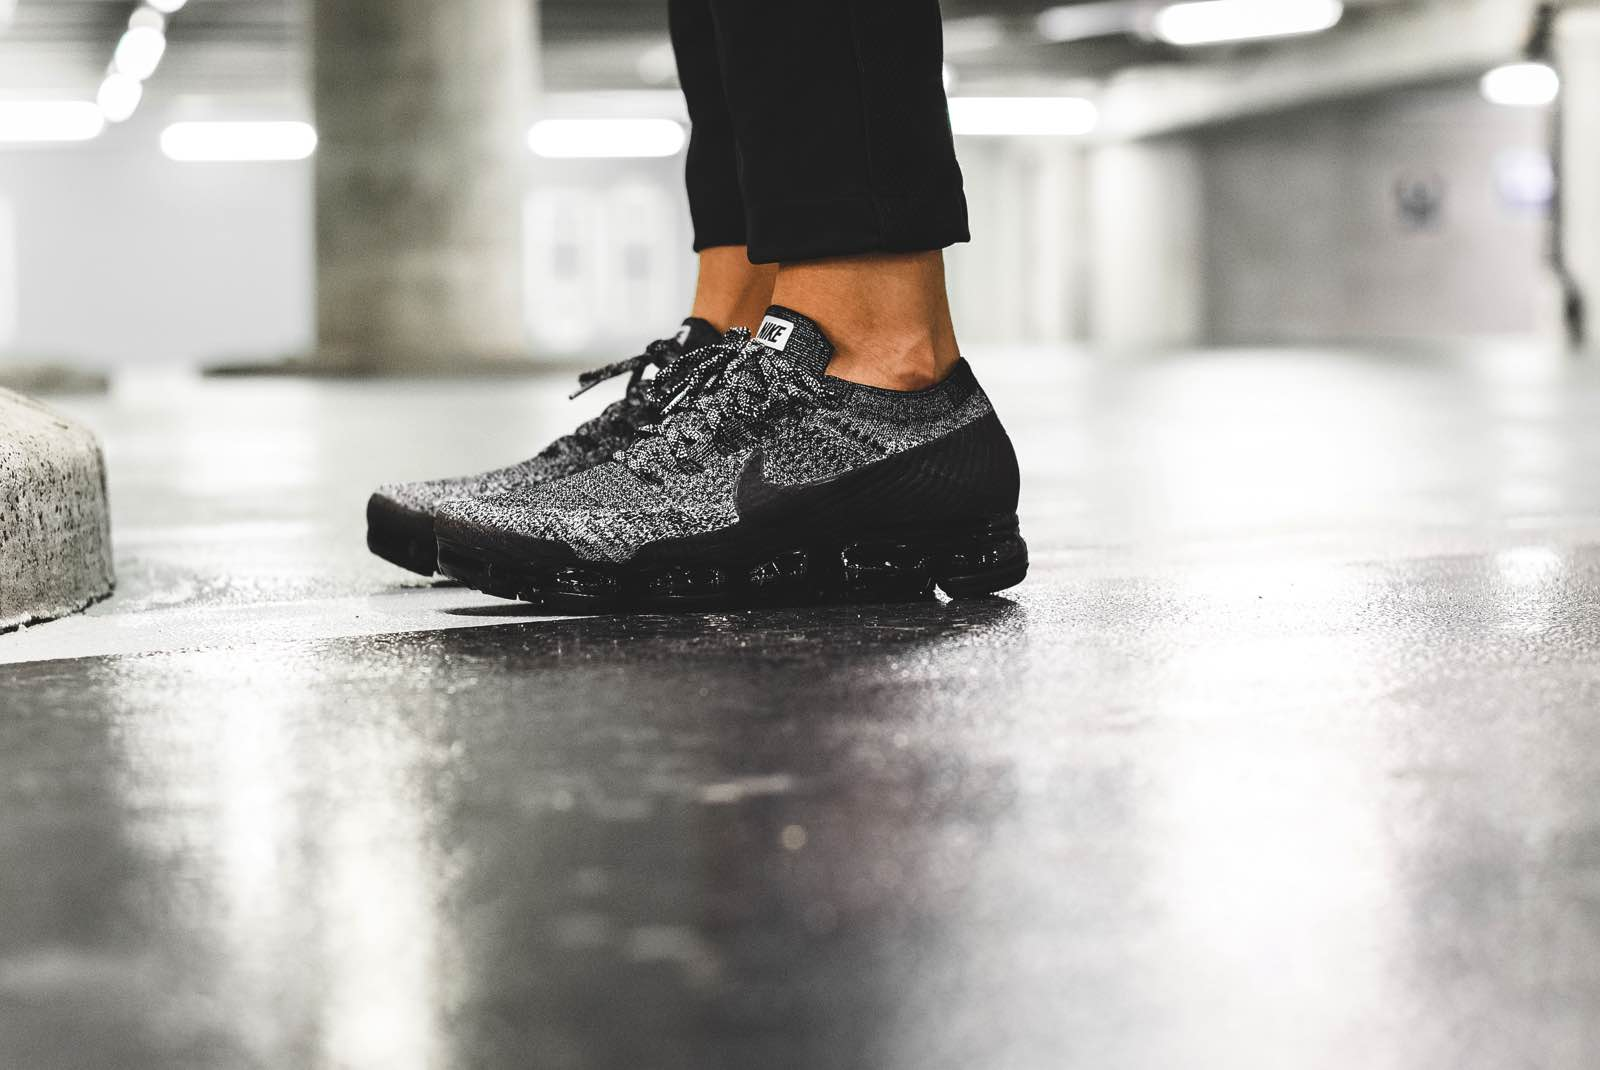 96fc9c736 Nike Air Vapormax Flyknit Cookies And Cream diversys.co.uk